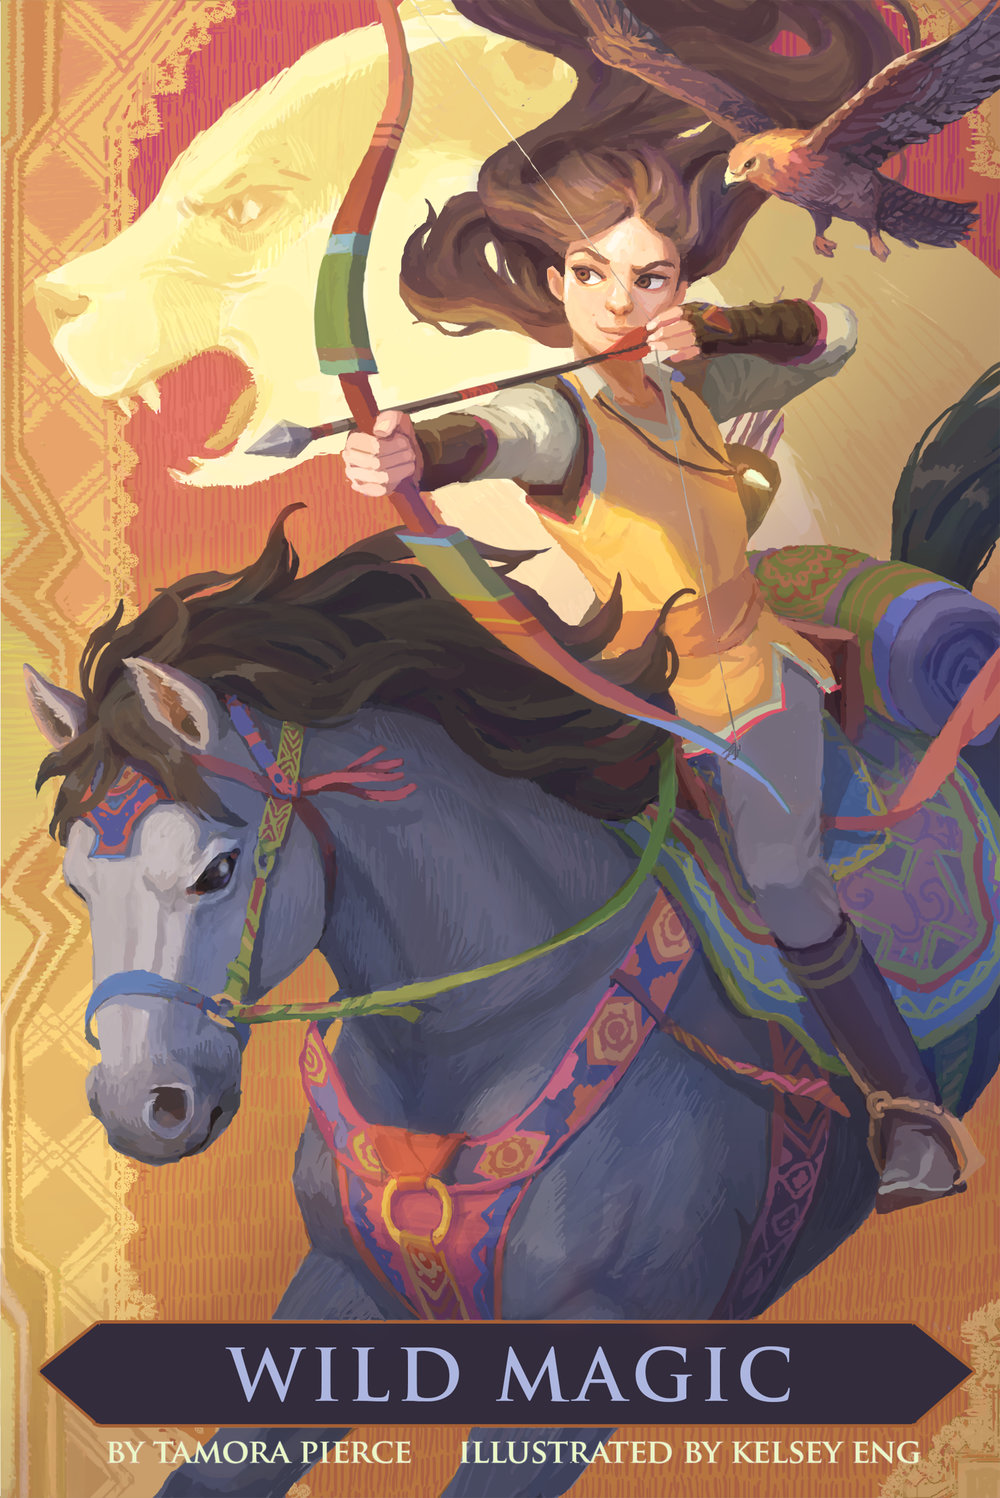 Girl with brown hair holding a bow and arrow while riding a horse. A hawk flies in the upper right corner. Faint image of a badger in the background.